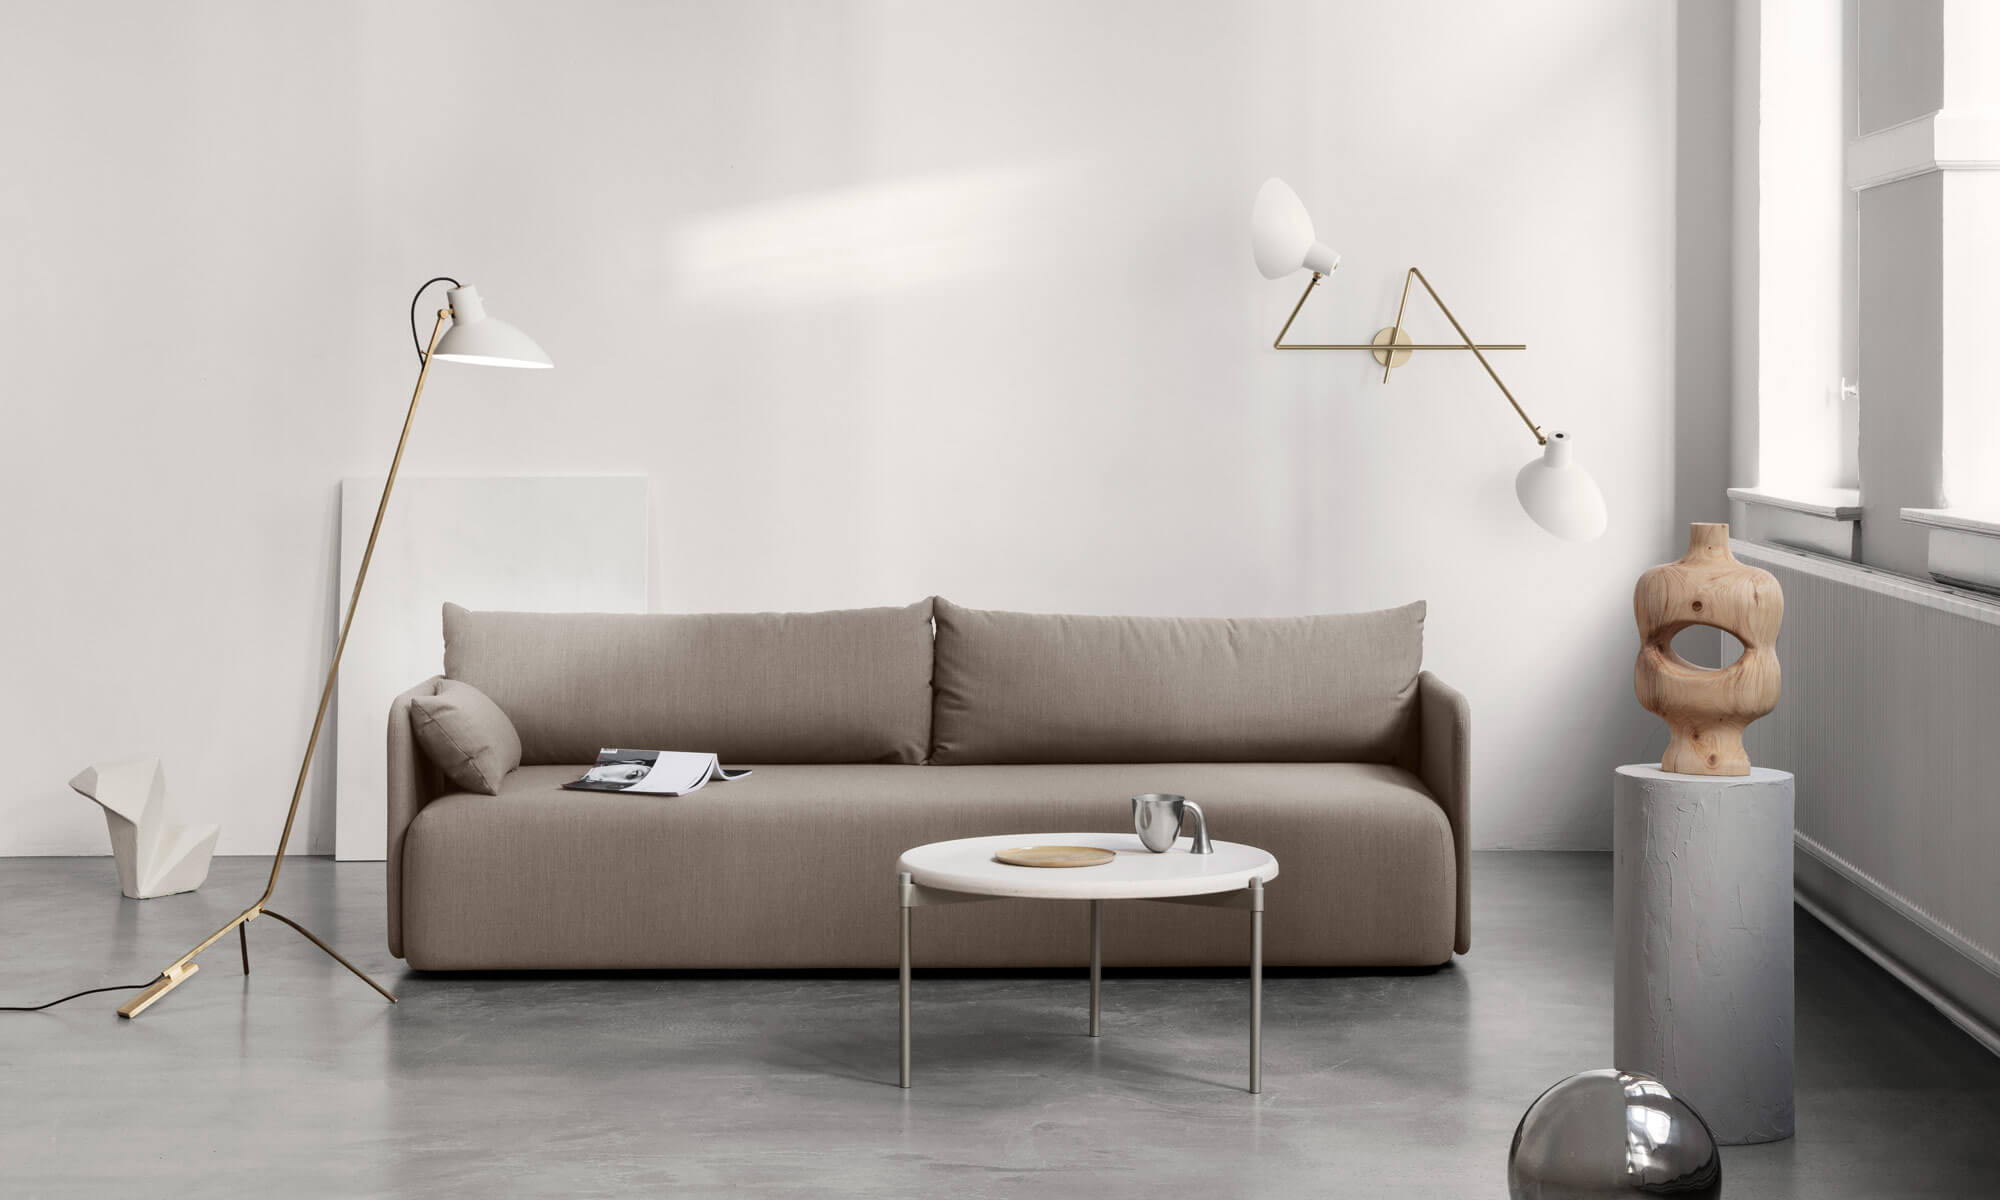 Astep-designer-lighting-vv-cinquanta-floor-lamp.jpg